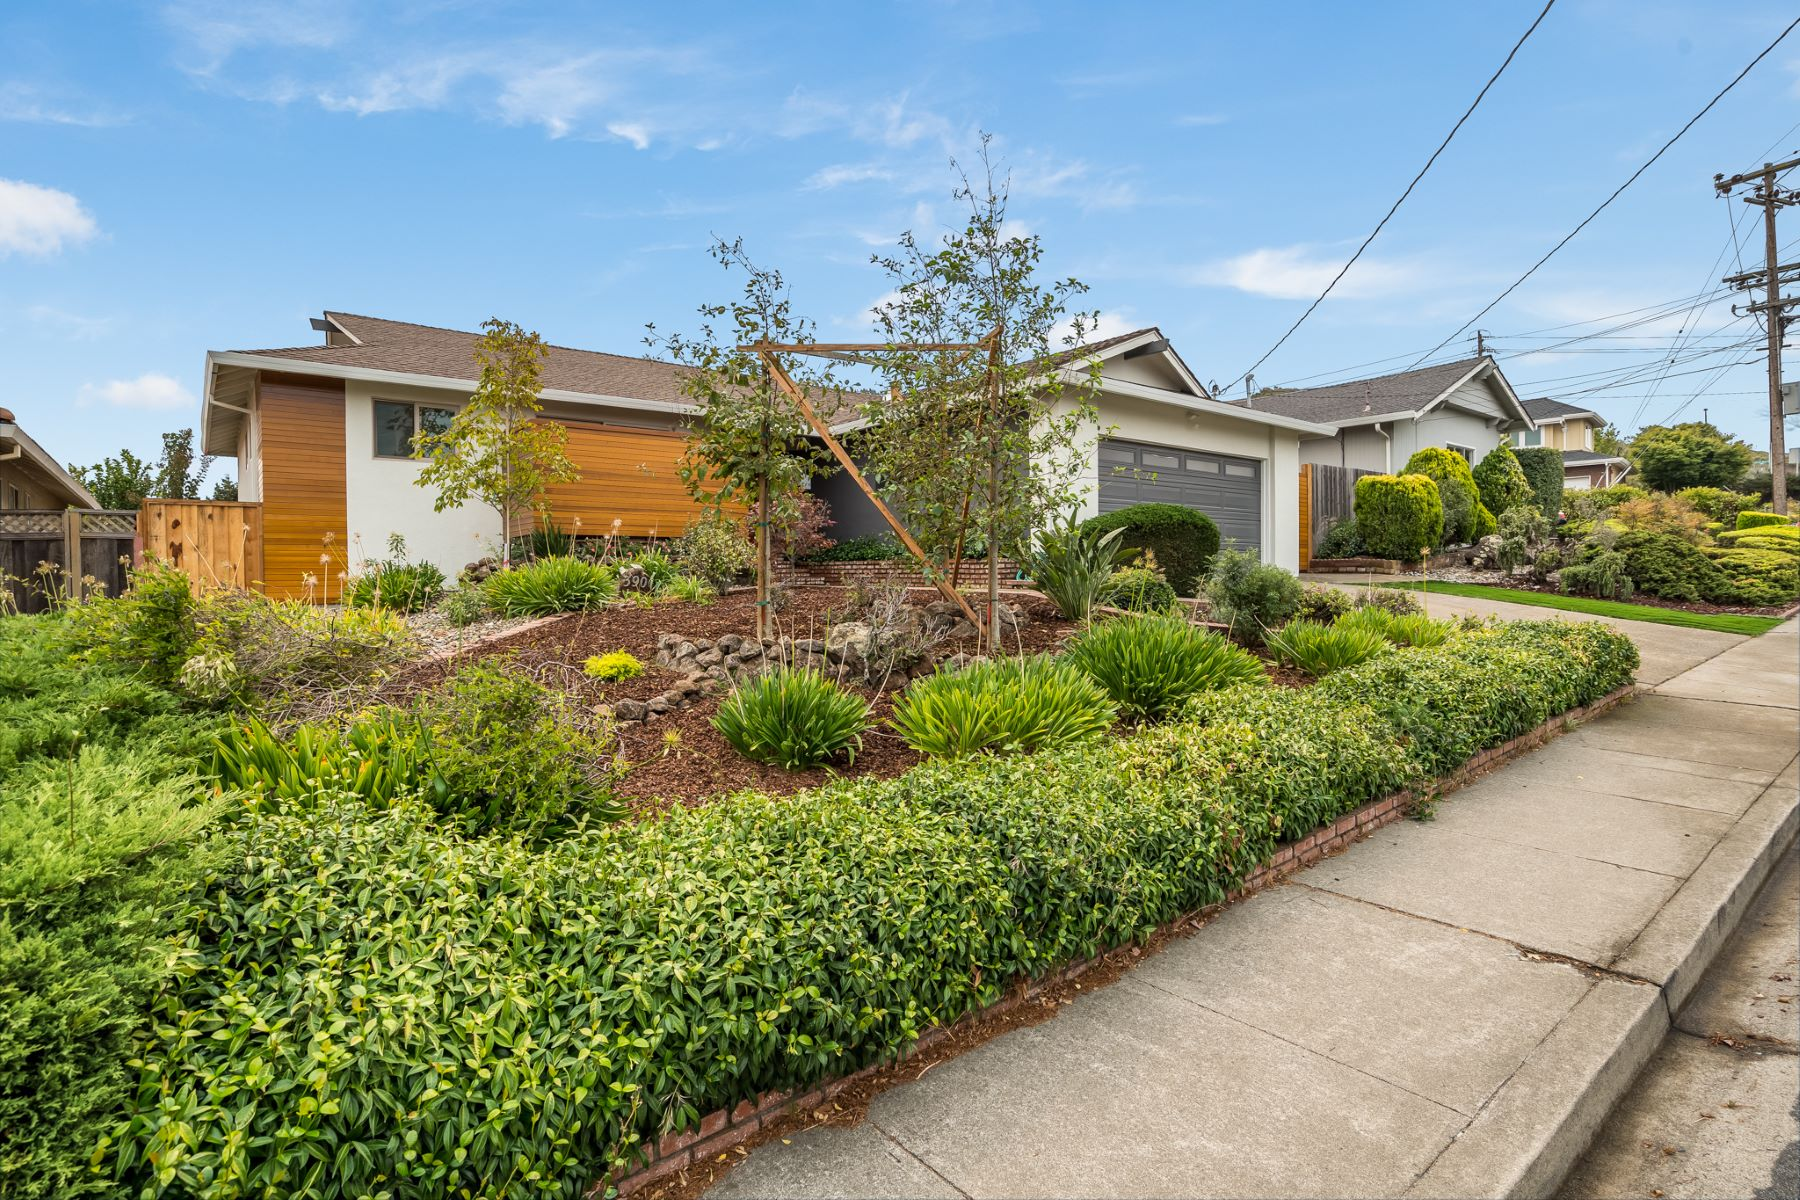 Single Family Homes for Active at Luxury Home in Belmont Hills 3904 Christian Dr Belmont, California 94002 United States